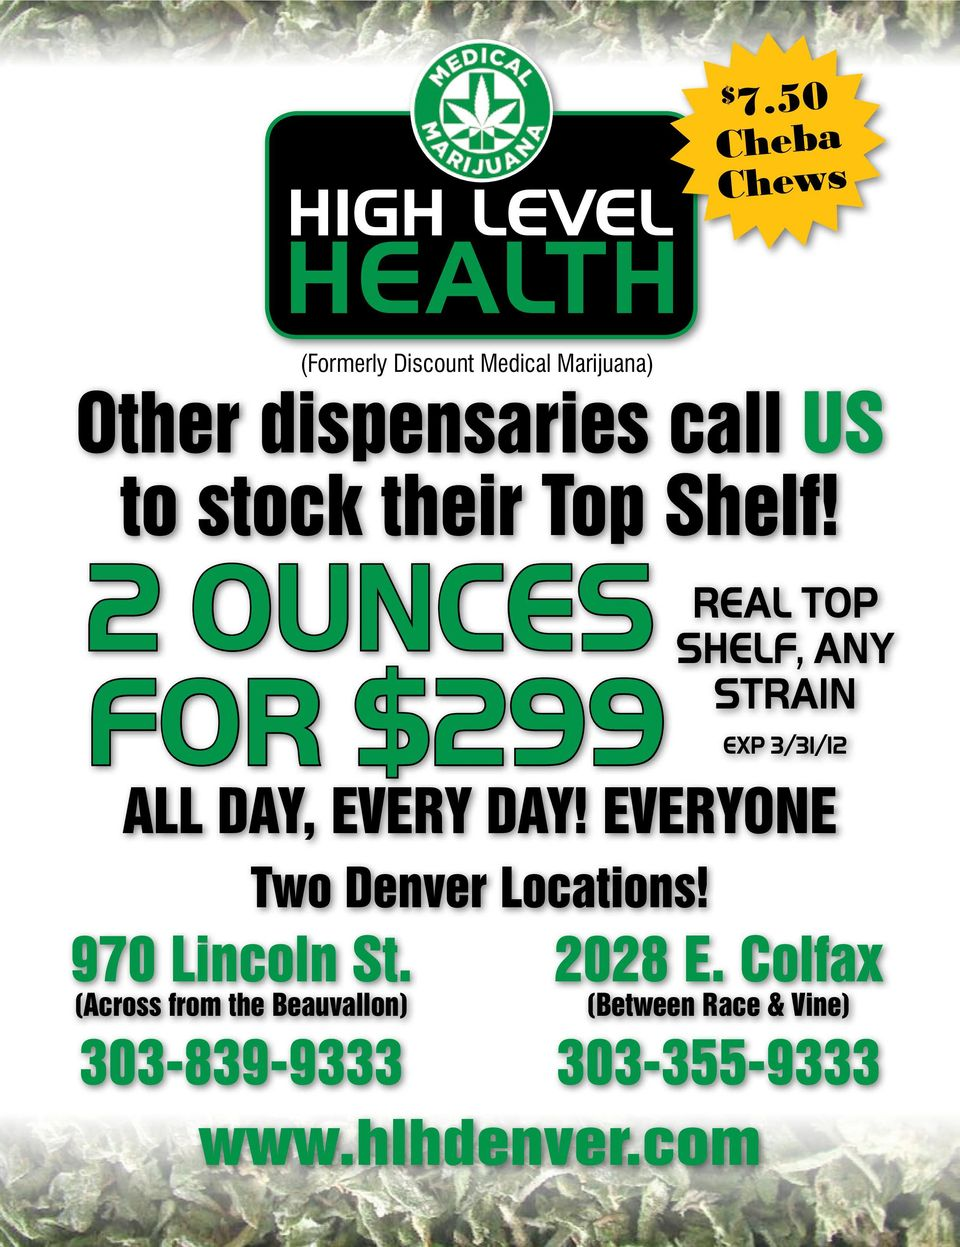 (Across from the Beauvallon) 303-839-9333 (Formerly Discount Medical Marijuana) Two